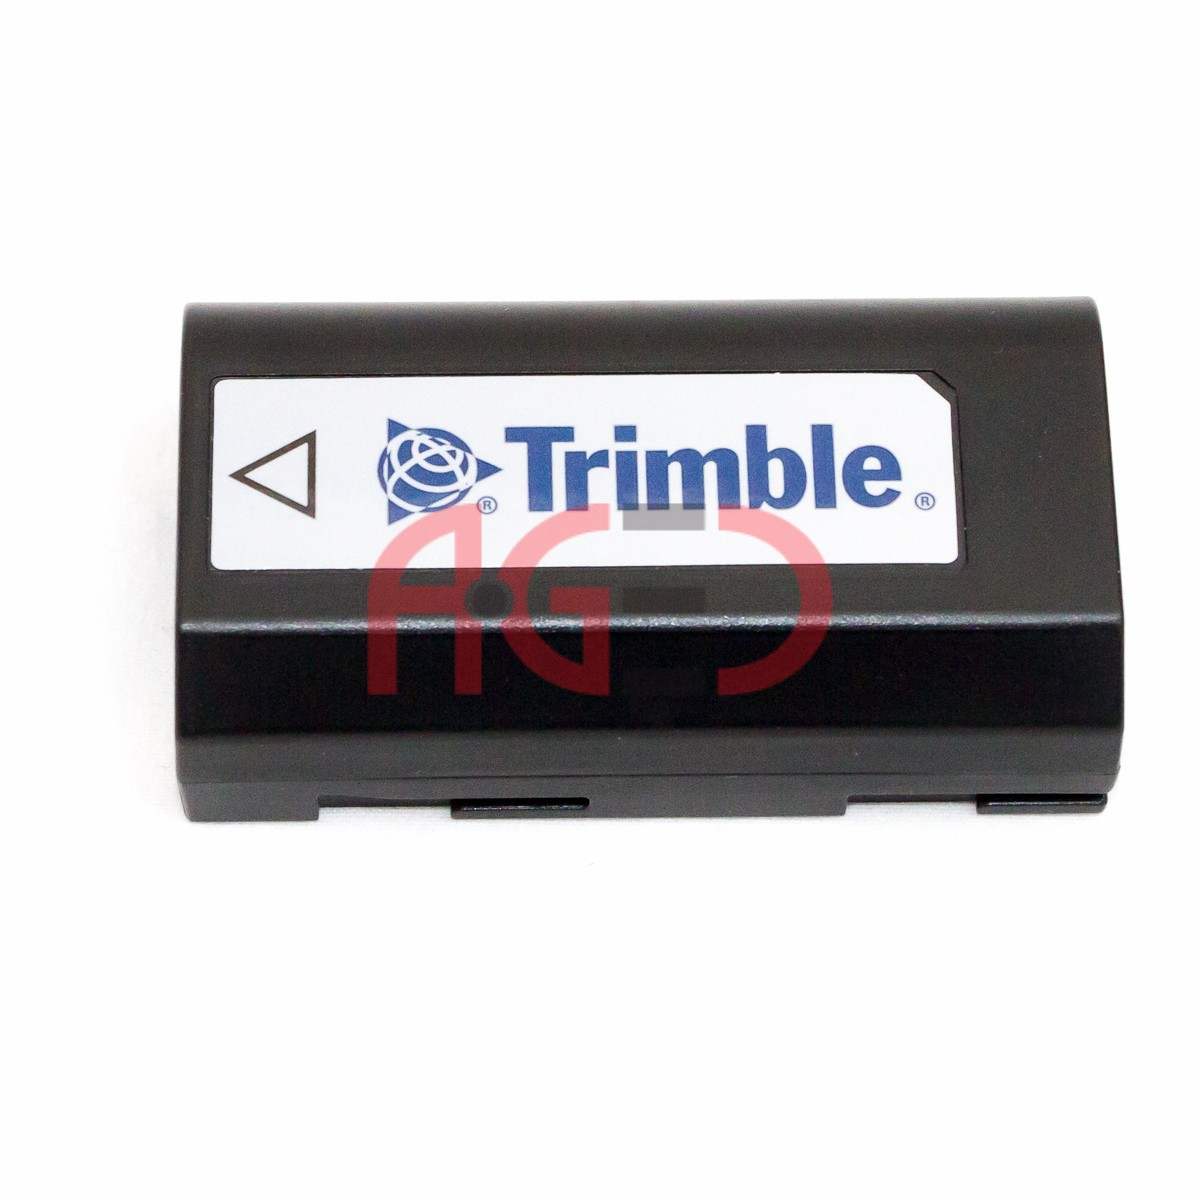 Trimble DiNi 0.3. Фото N11